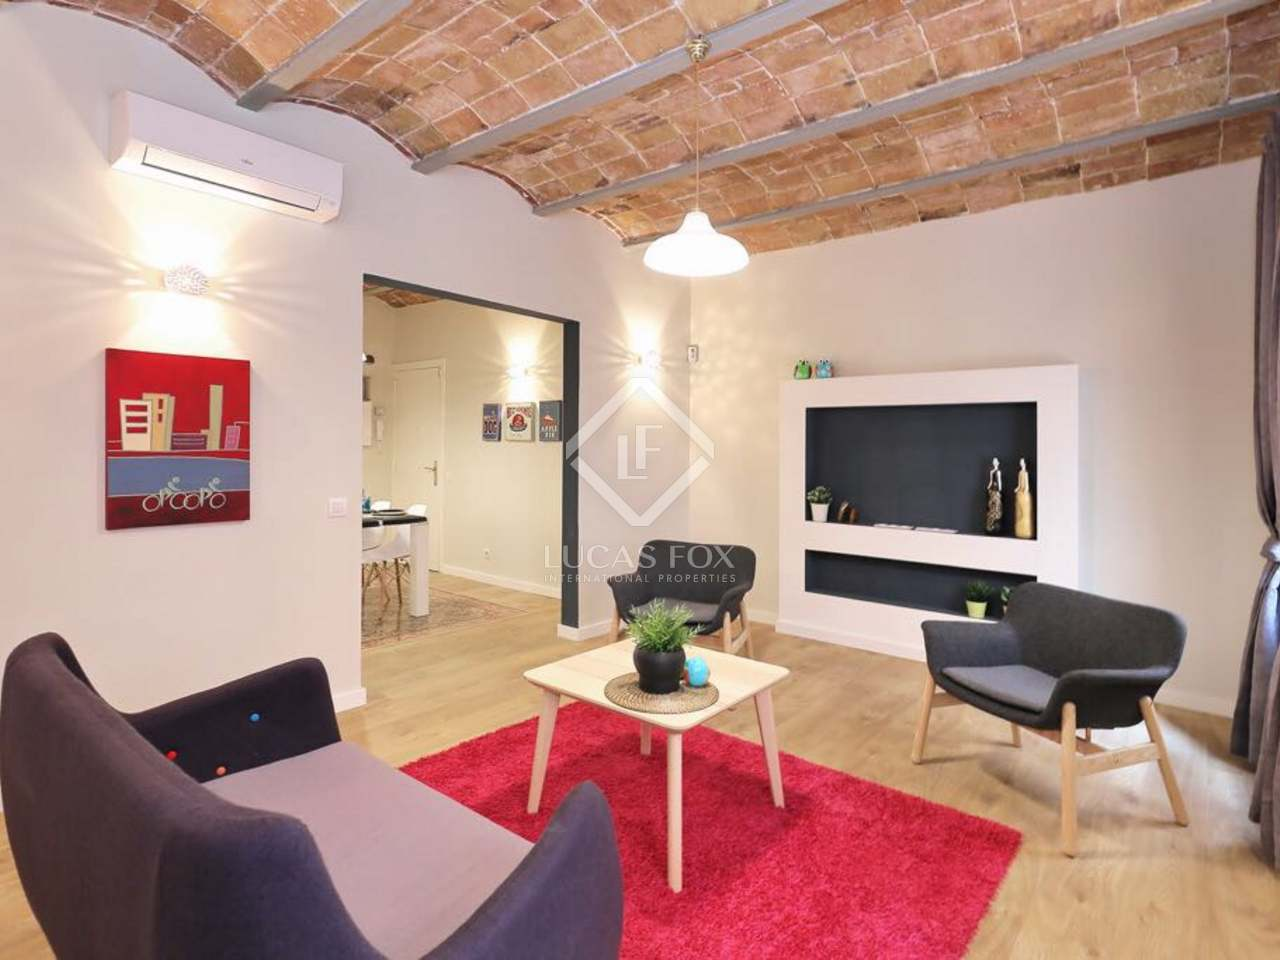 77 M Apartment For Sale In Poble Sec Barcelona # Muebles Poble Sec